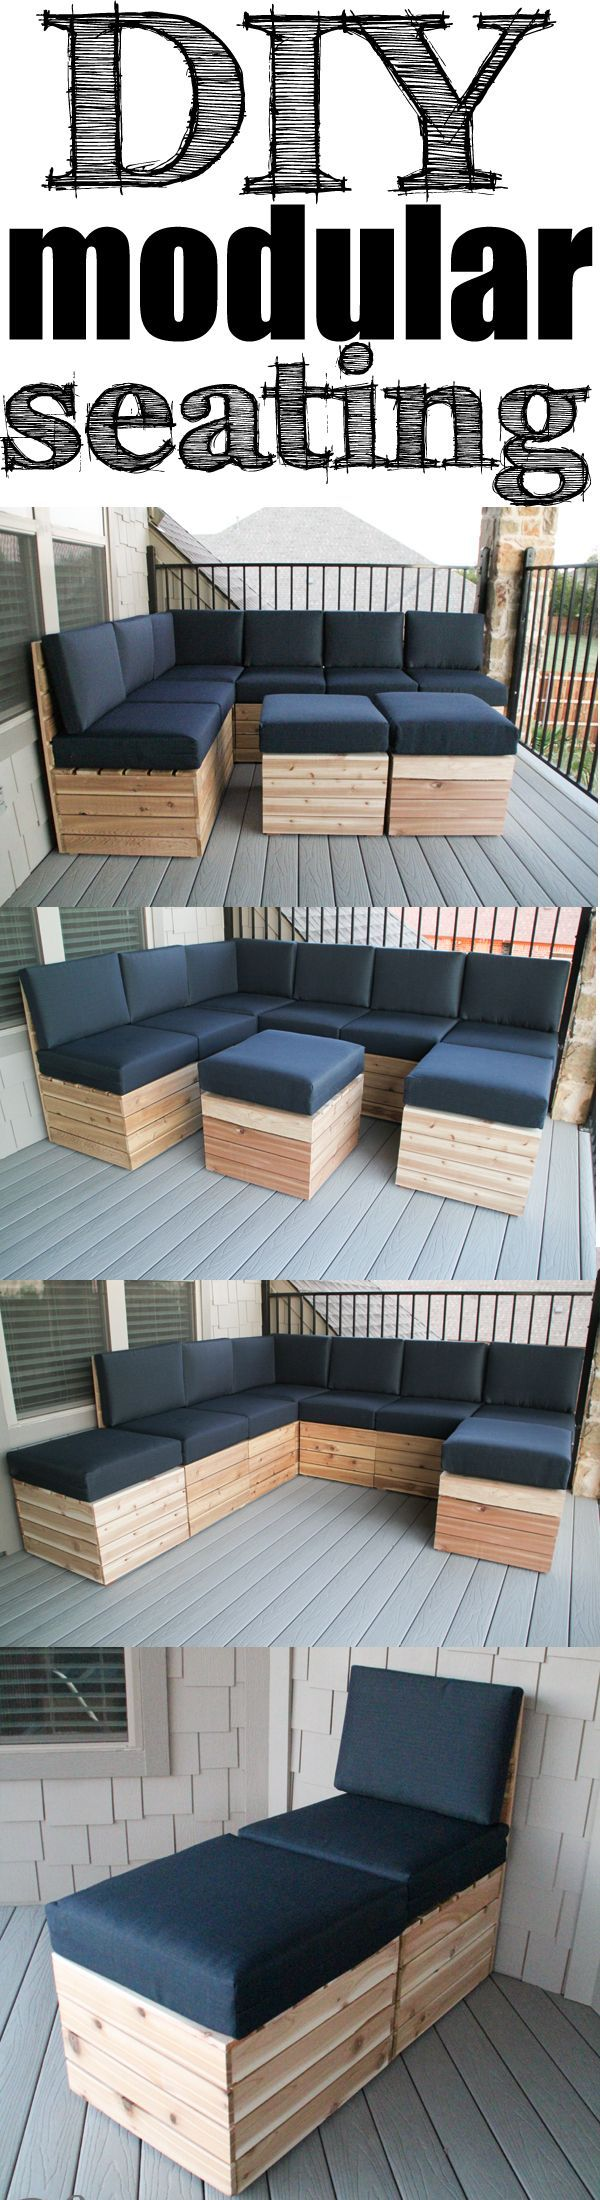 diy outdoor pallet sectional. DIY Modular Seating! Easy Build And You Can It/arrange It To Fit. Pallet Furniture For OutsidePallet SectionalDiy Diy Outdoor Sectional